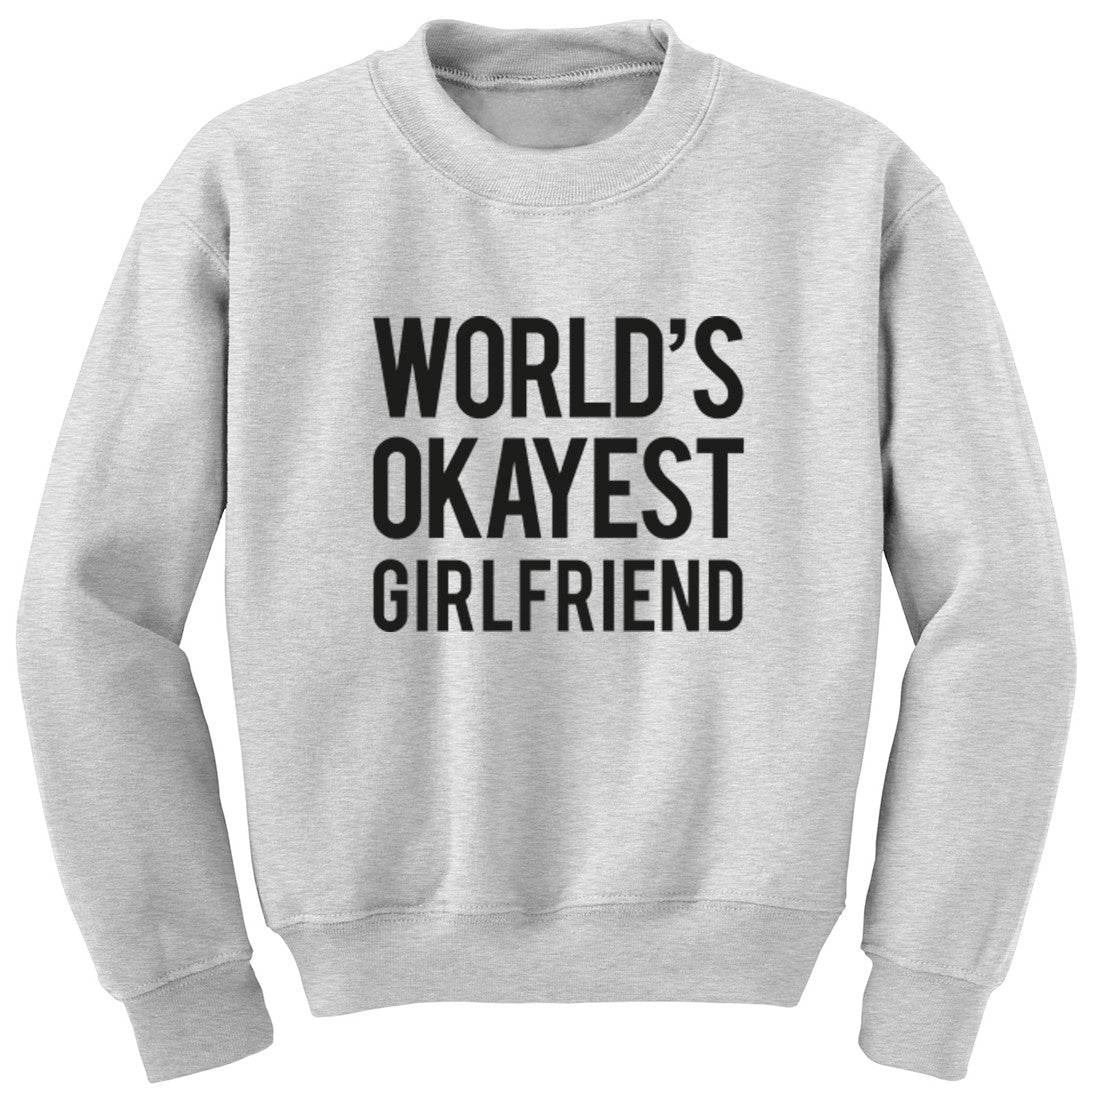 World's Okayest Girlfriend Unisex Jumper K0482 - Illustrated Identity Ltd.